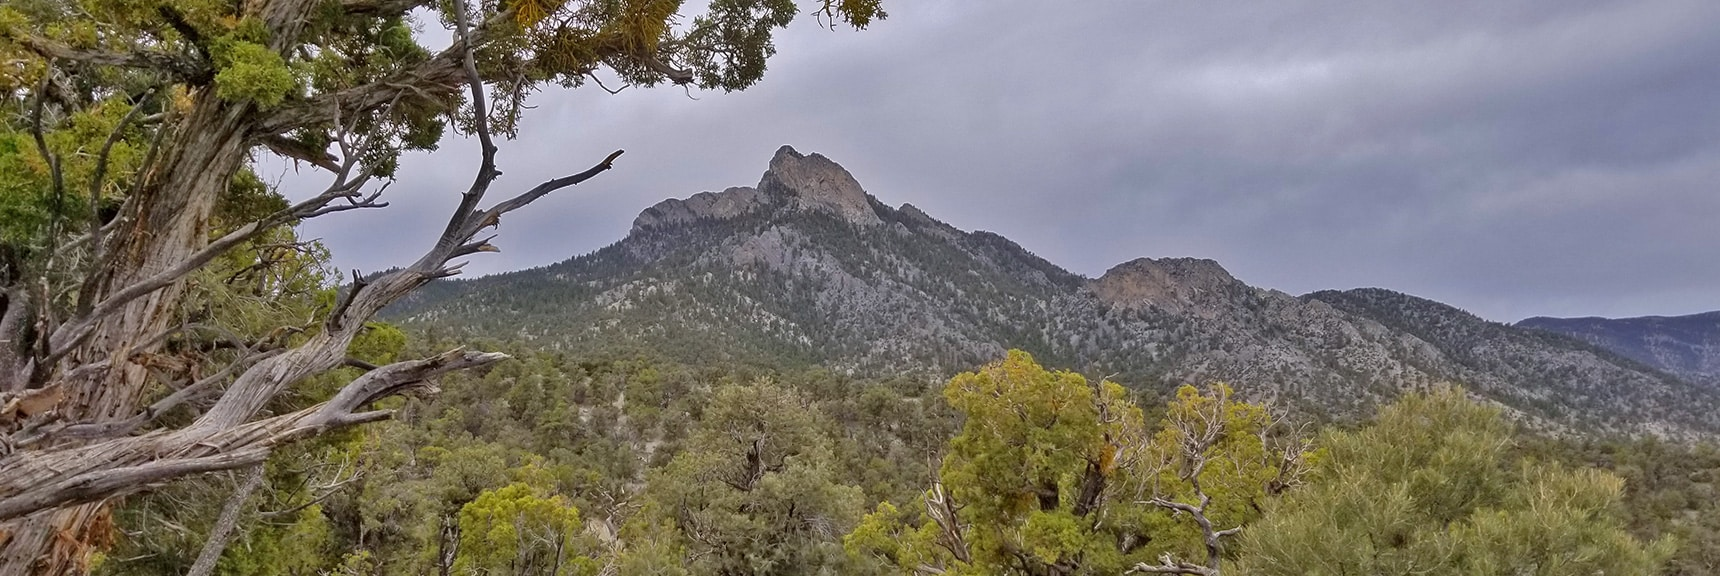 Continuing to Approach McFarland Peak   Sawmill Trail to McFarland Peak   Spring Mountains, Nevada